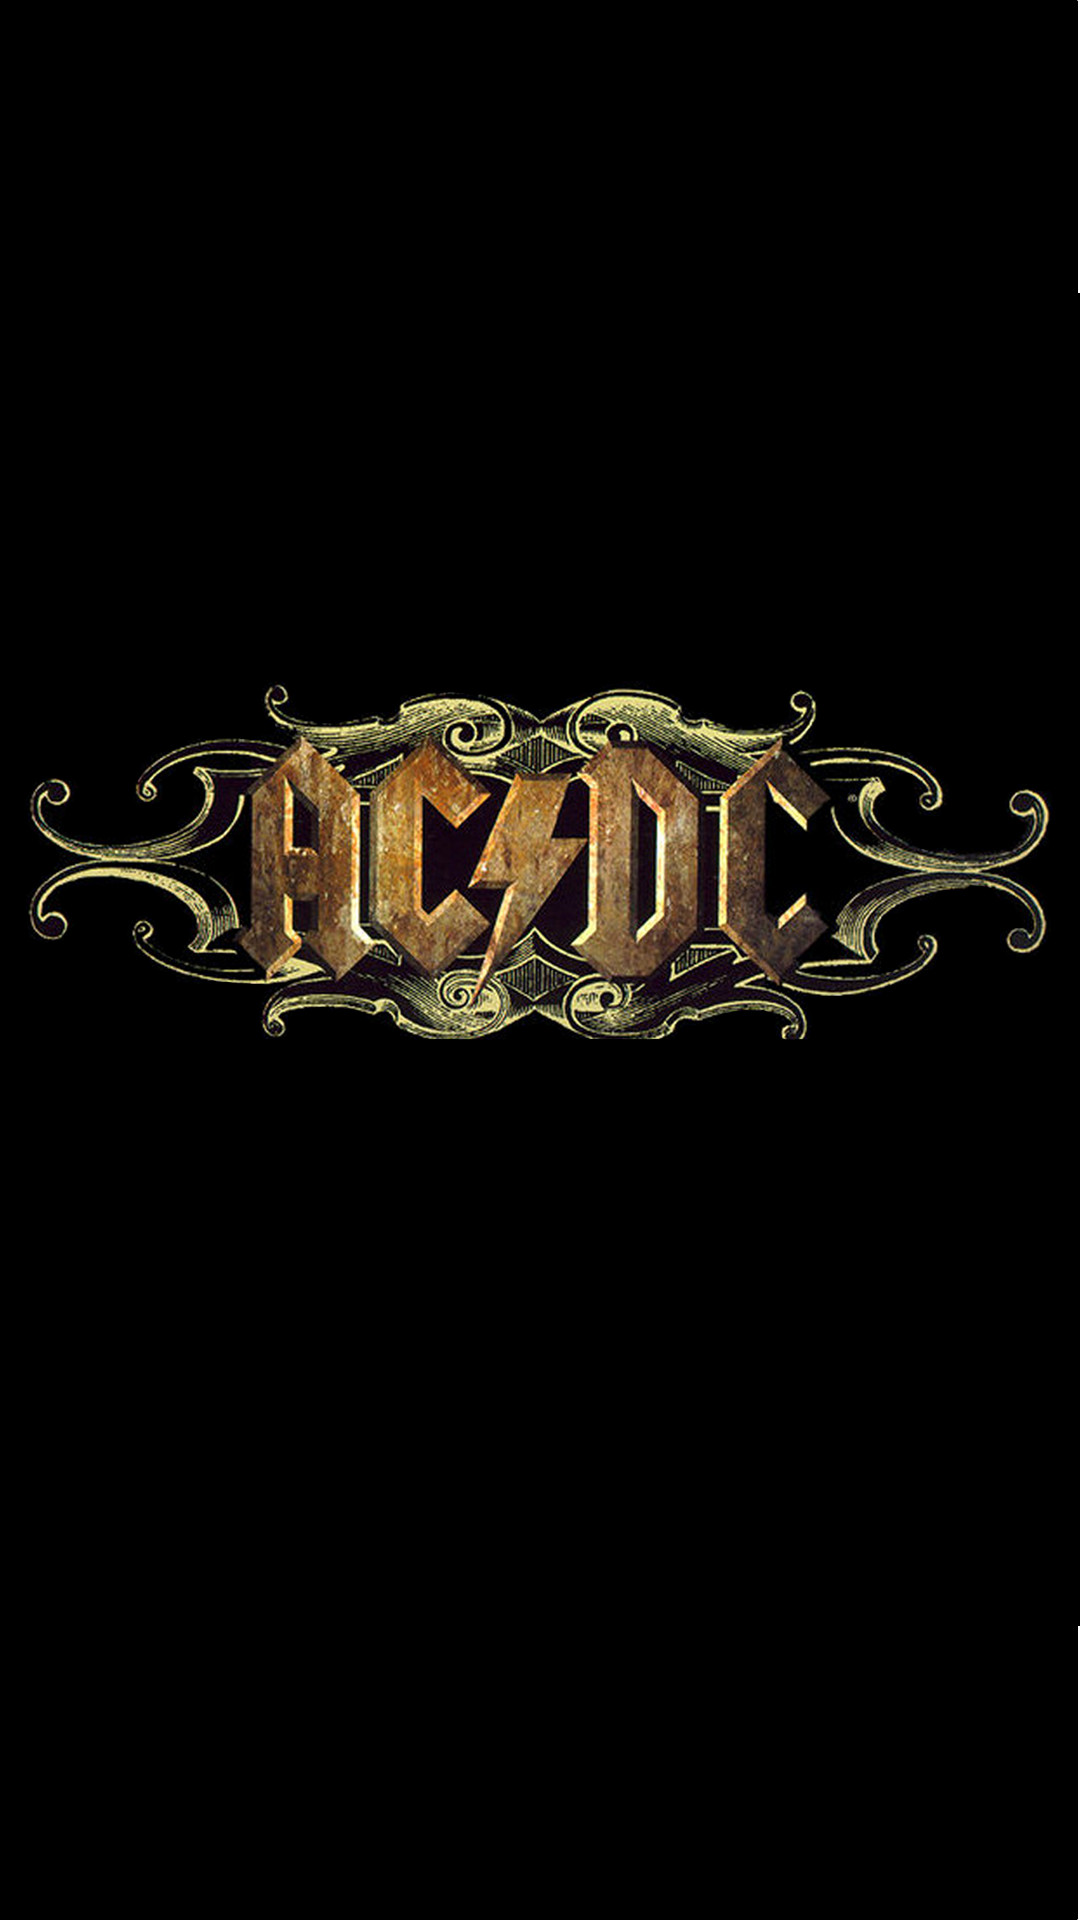 1080x1920 ACDC Rock Band Logo iPhone 6 Plus HD Wallpaper ...